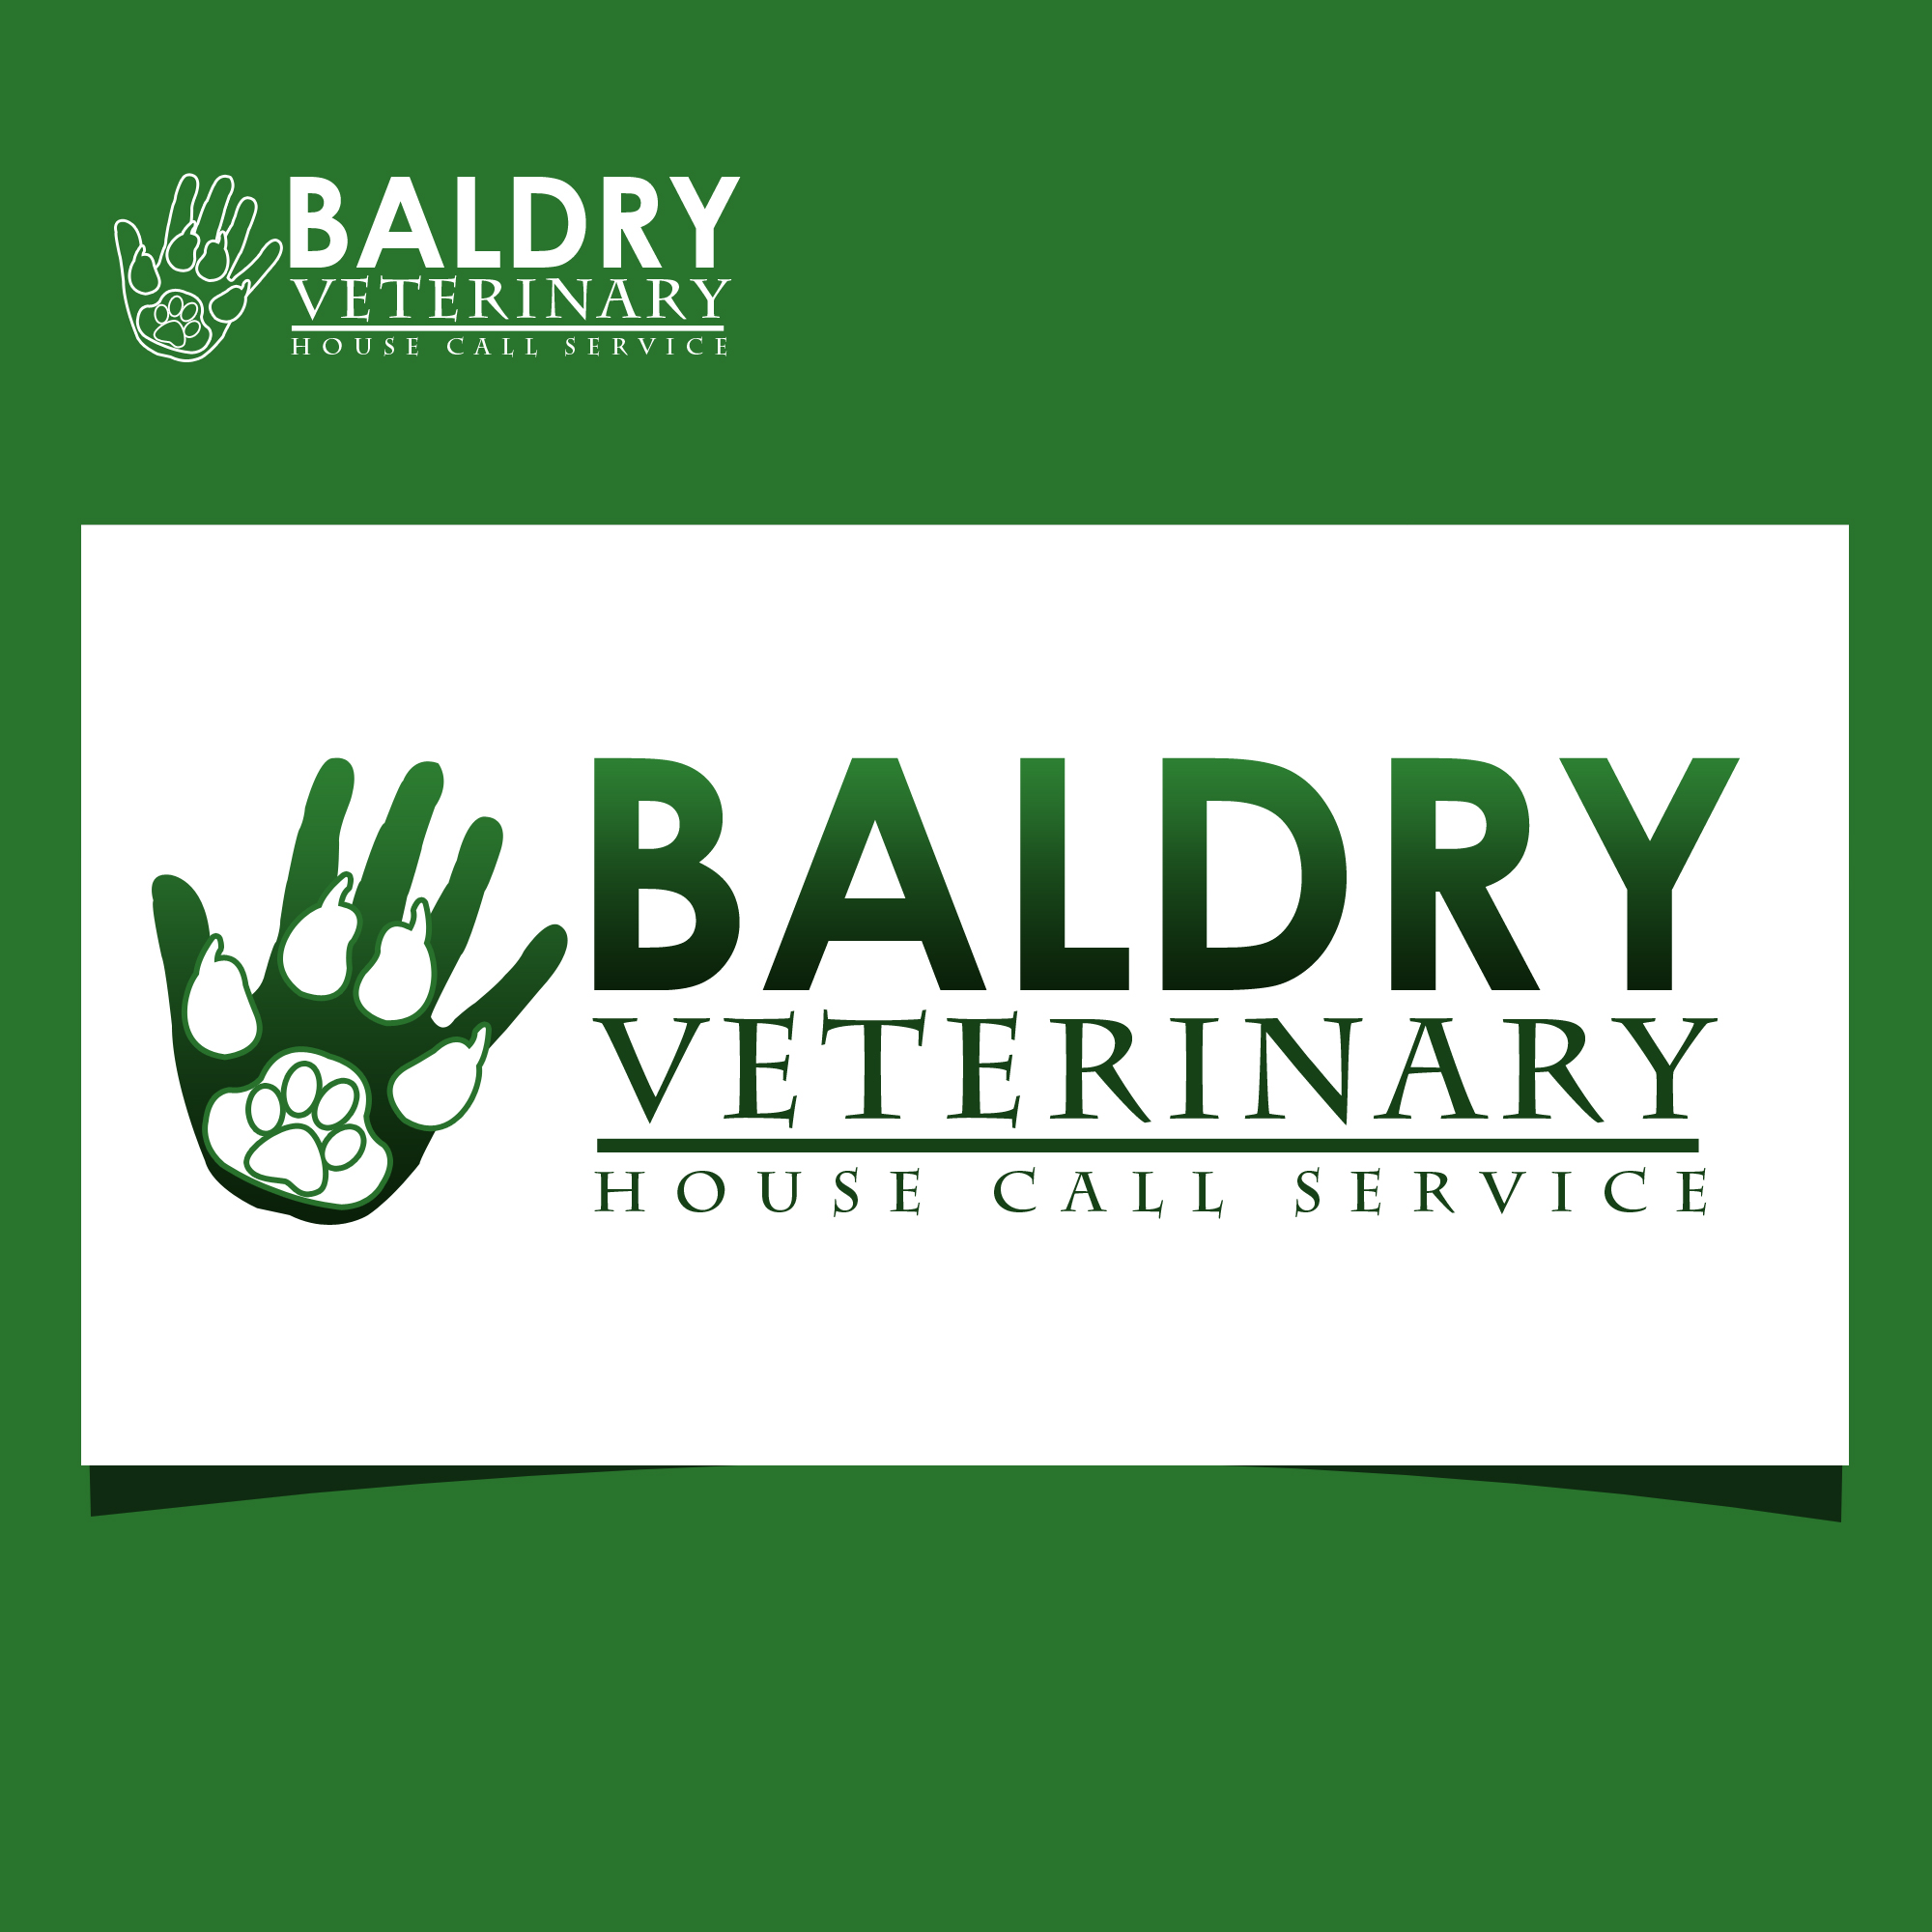 Logo Design by omARTist - Entry No. 102 in the Logo Design Contest Captivating Logo Design for Baldry Veterinary House Call Service.